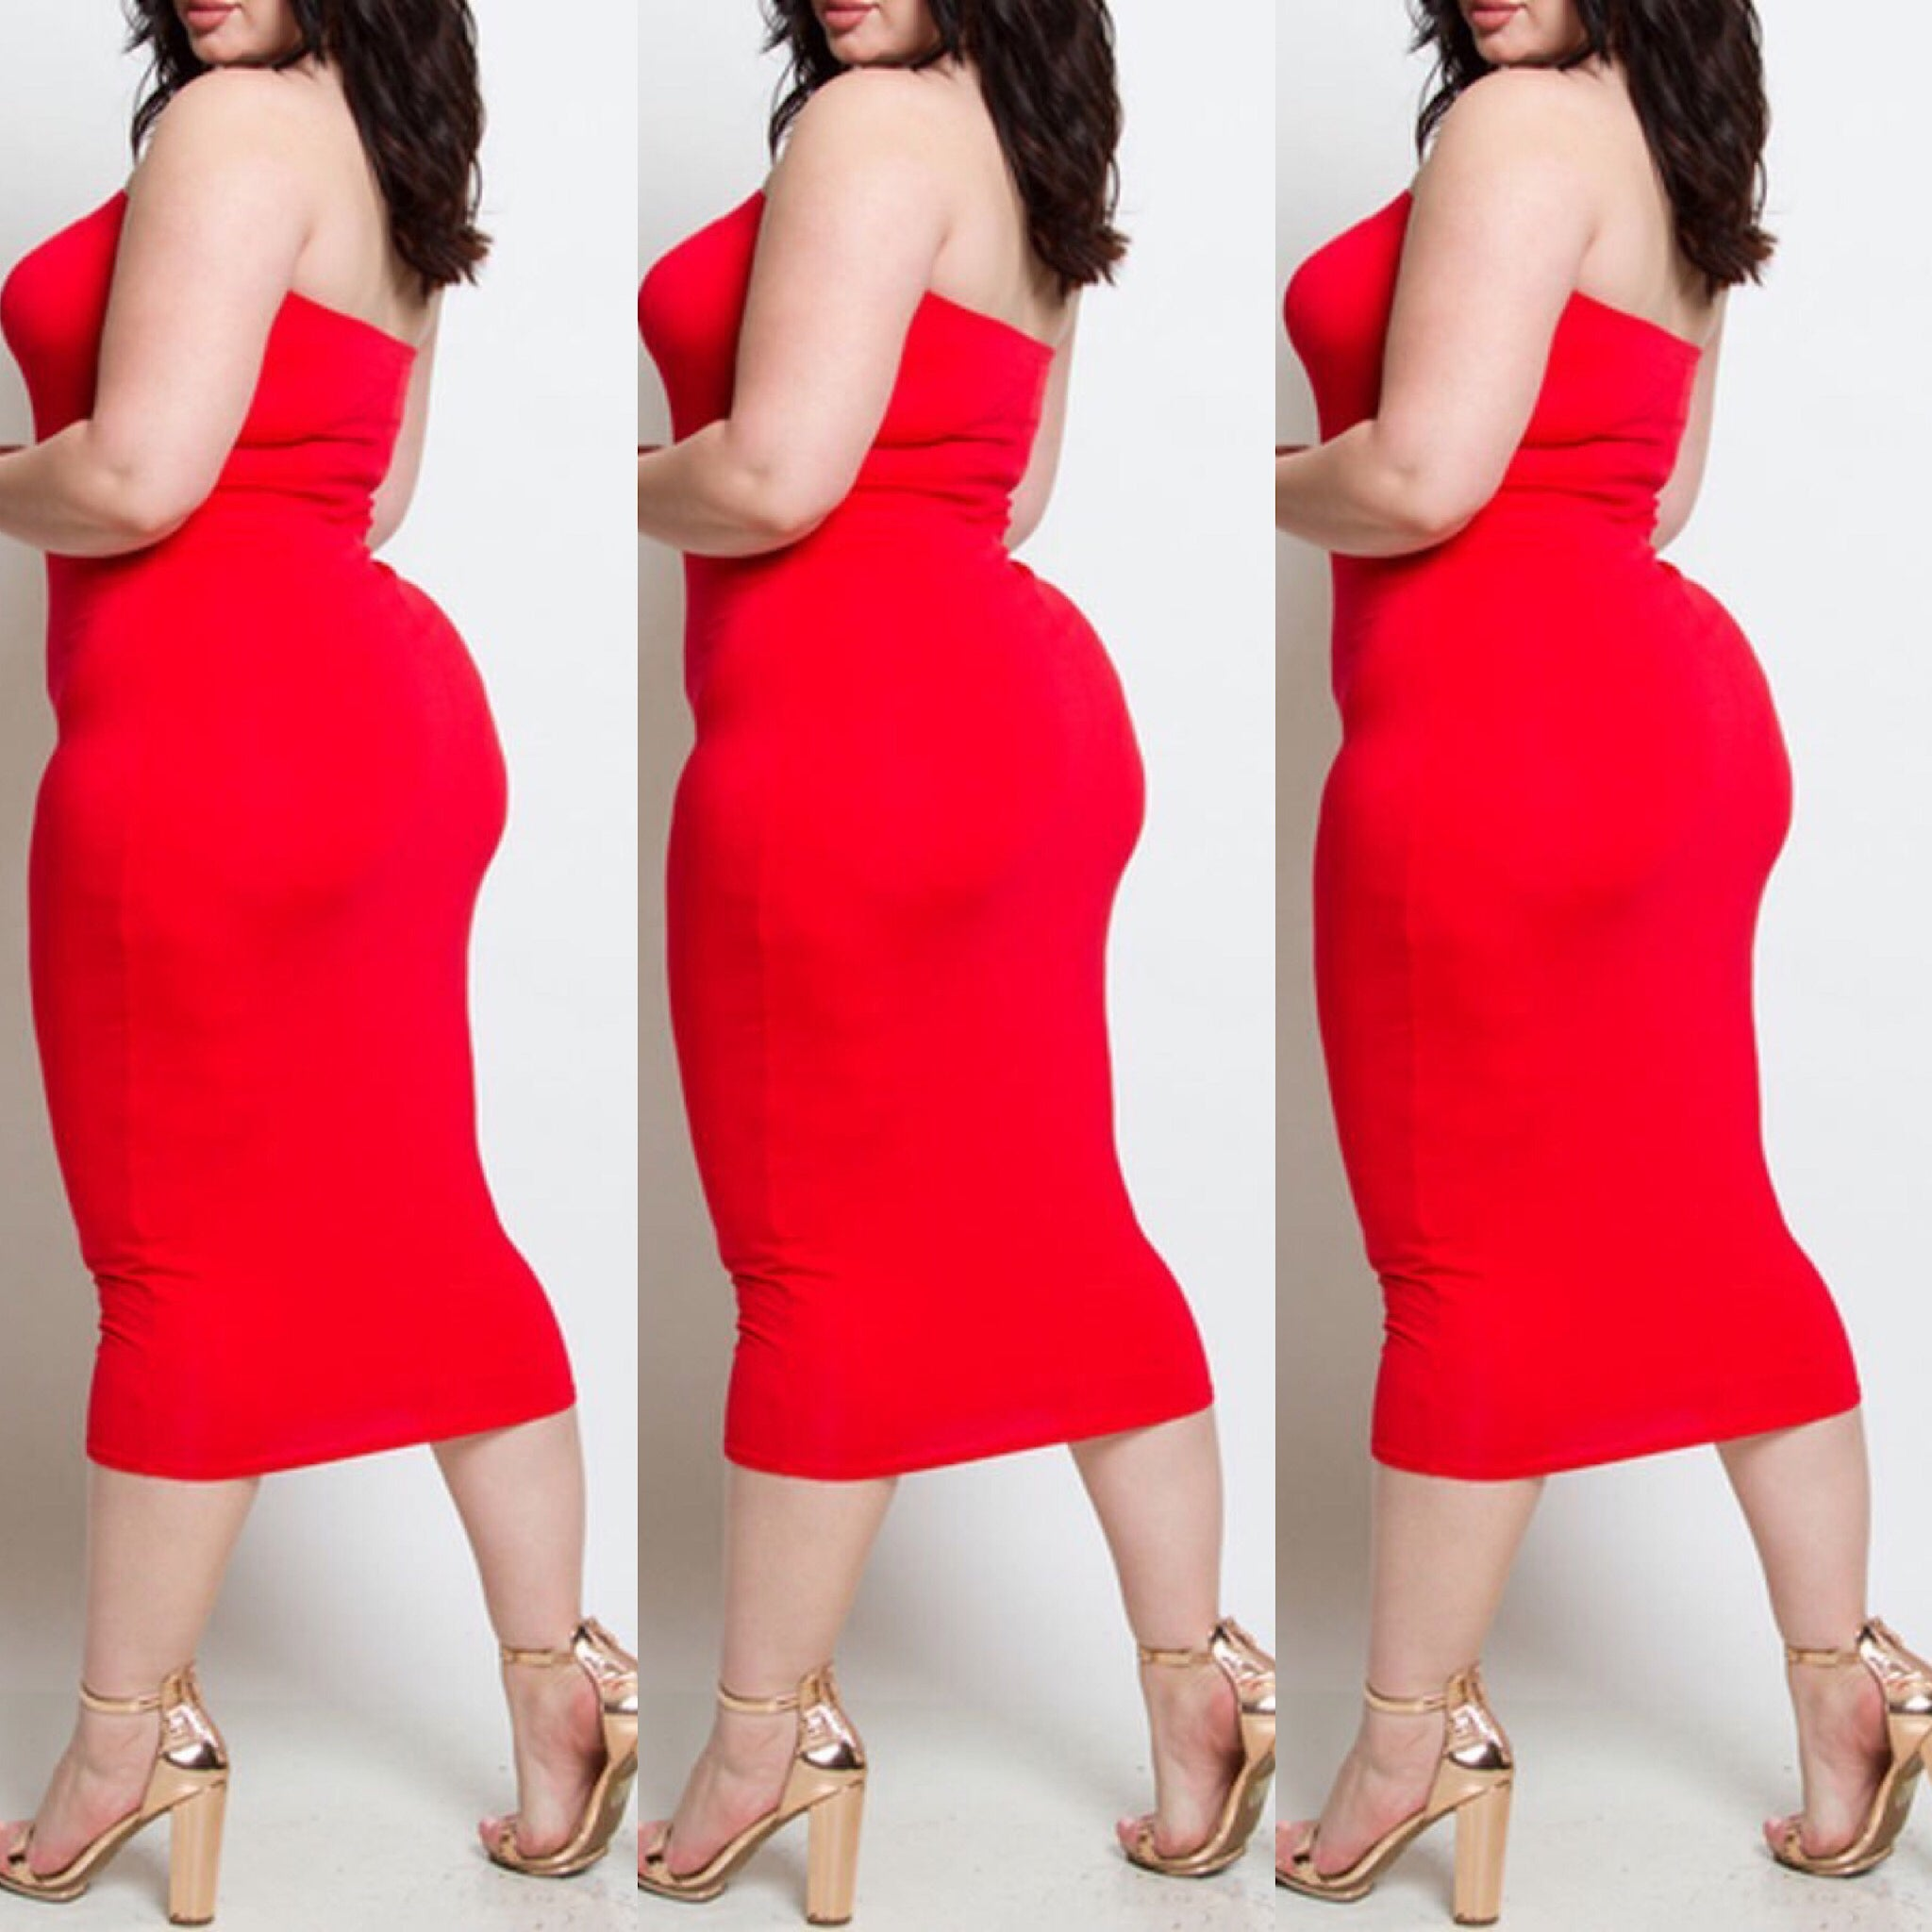 Buy Red Plus Size Strapless Tube Top Dress at Social Butterfly ...